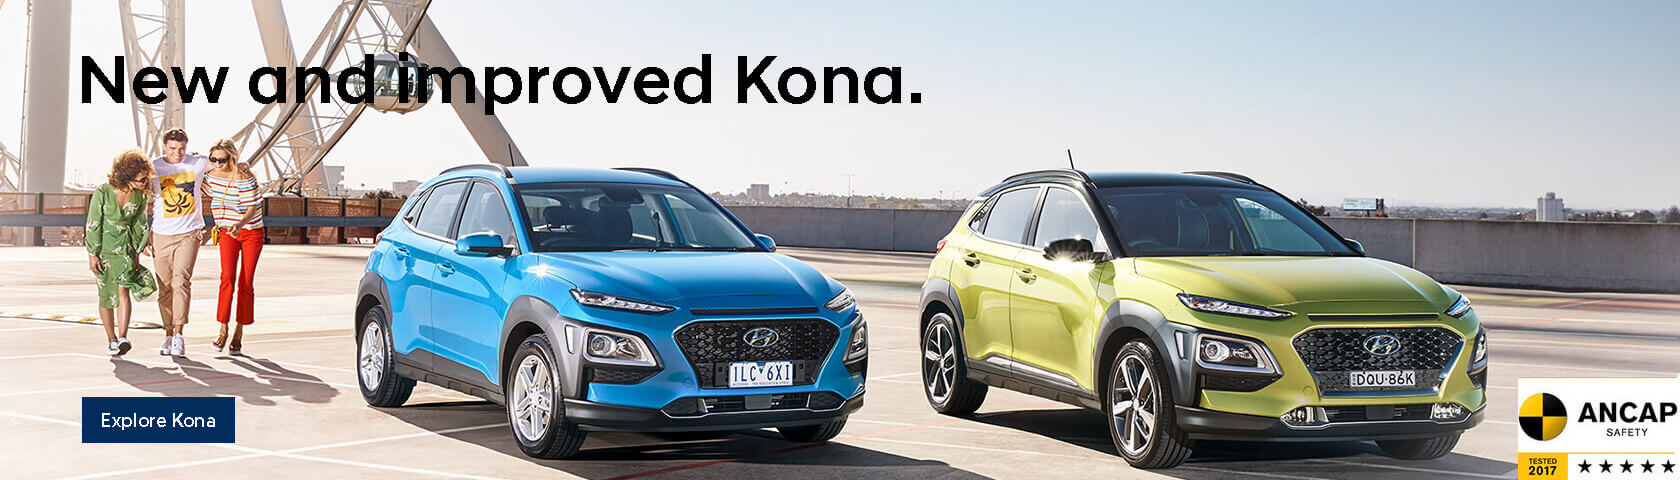 Hyundai New and Improved Kona